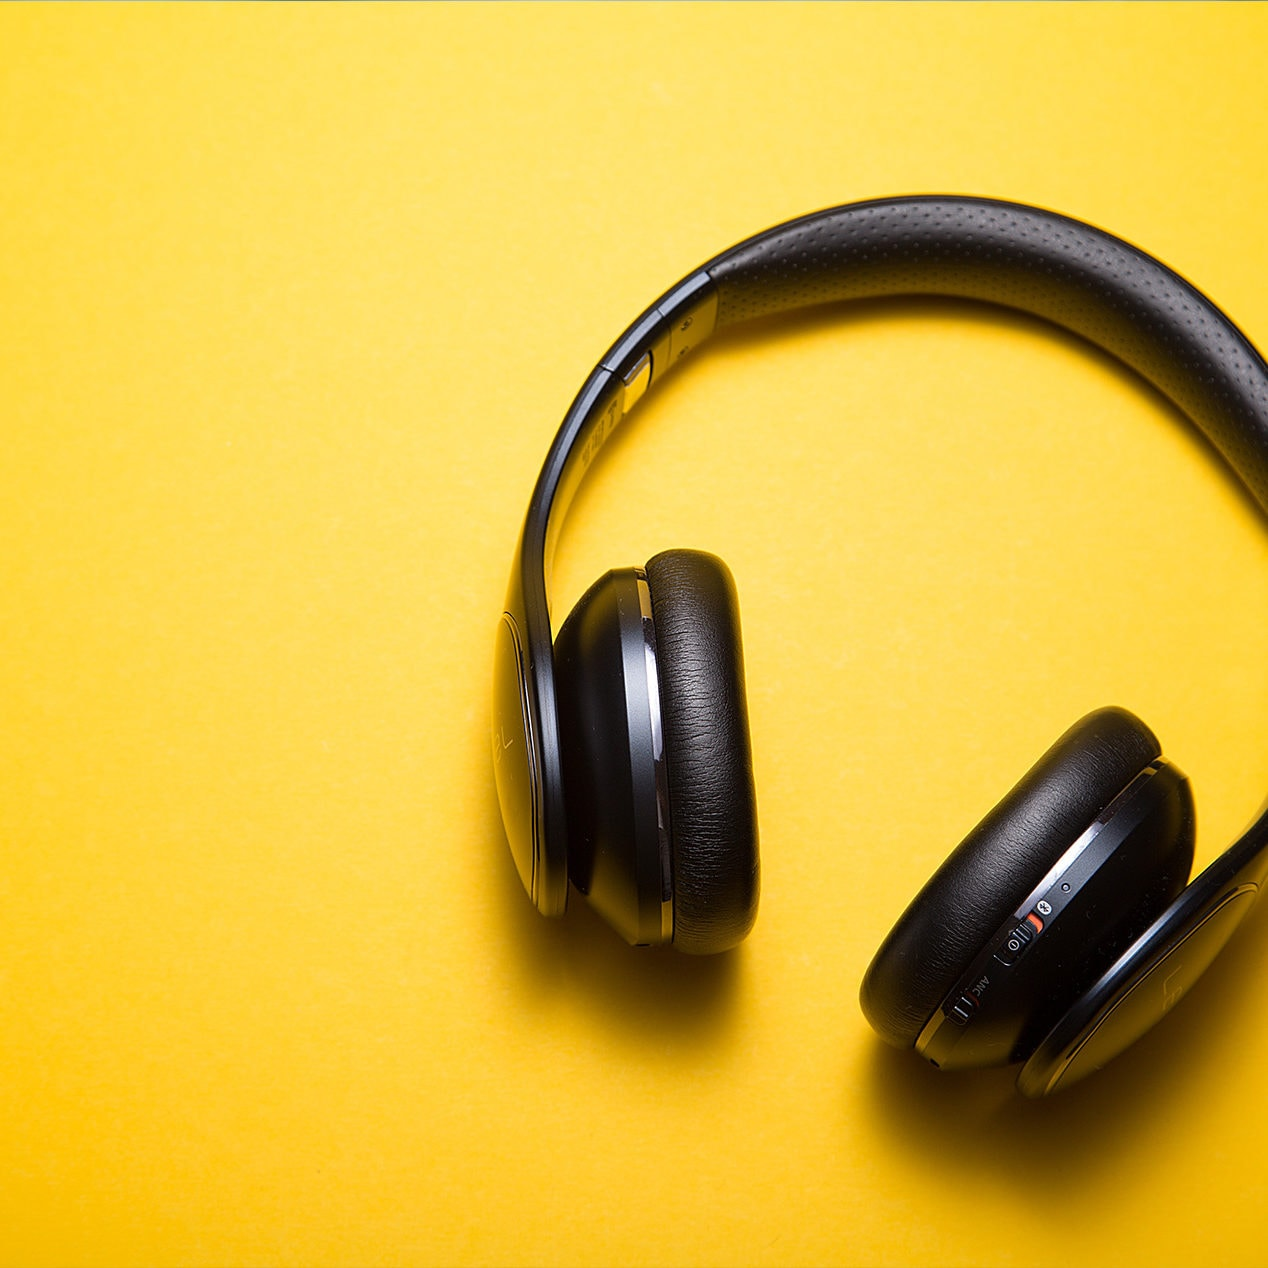 Black headphones on a yellow background